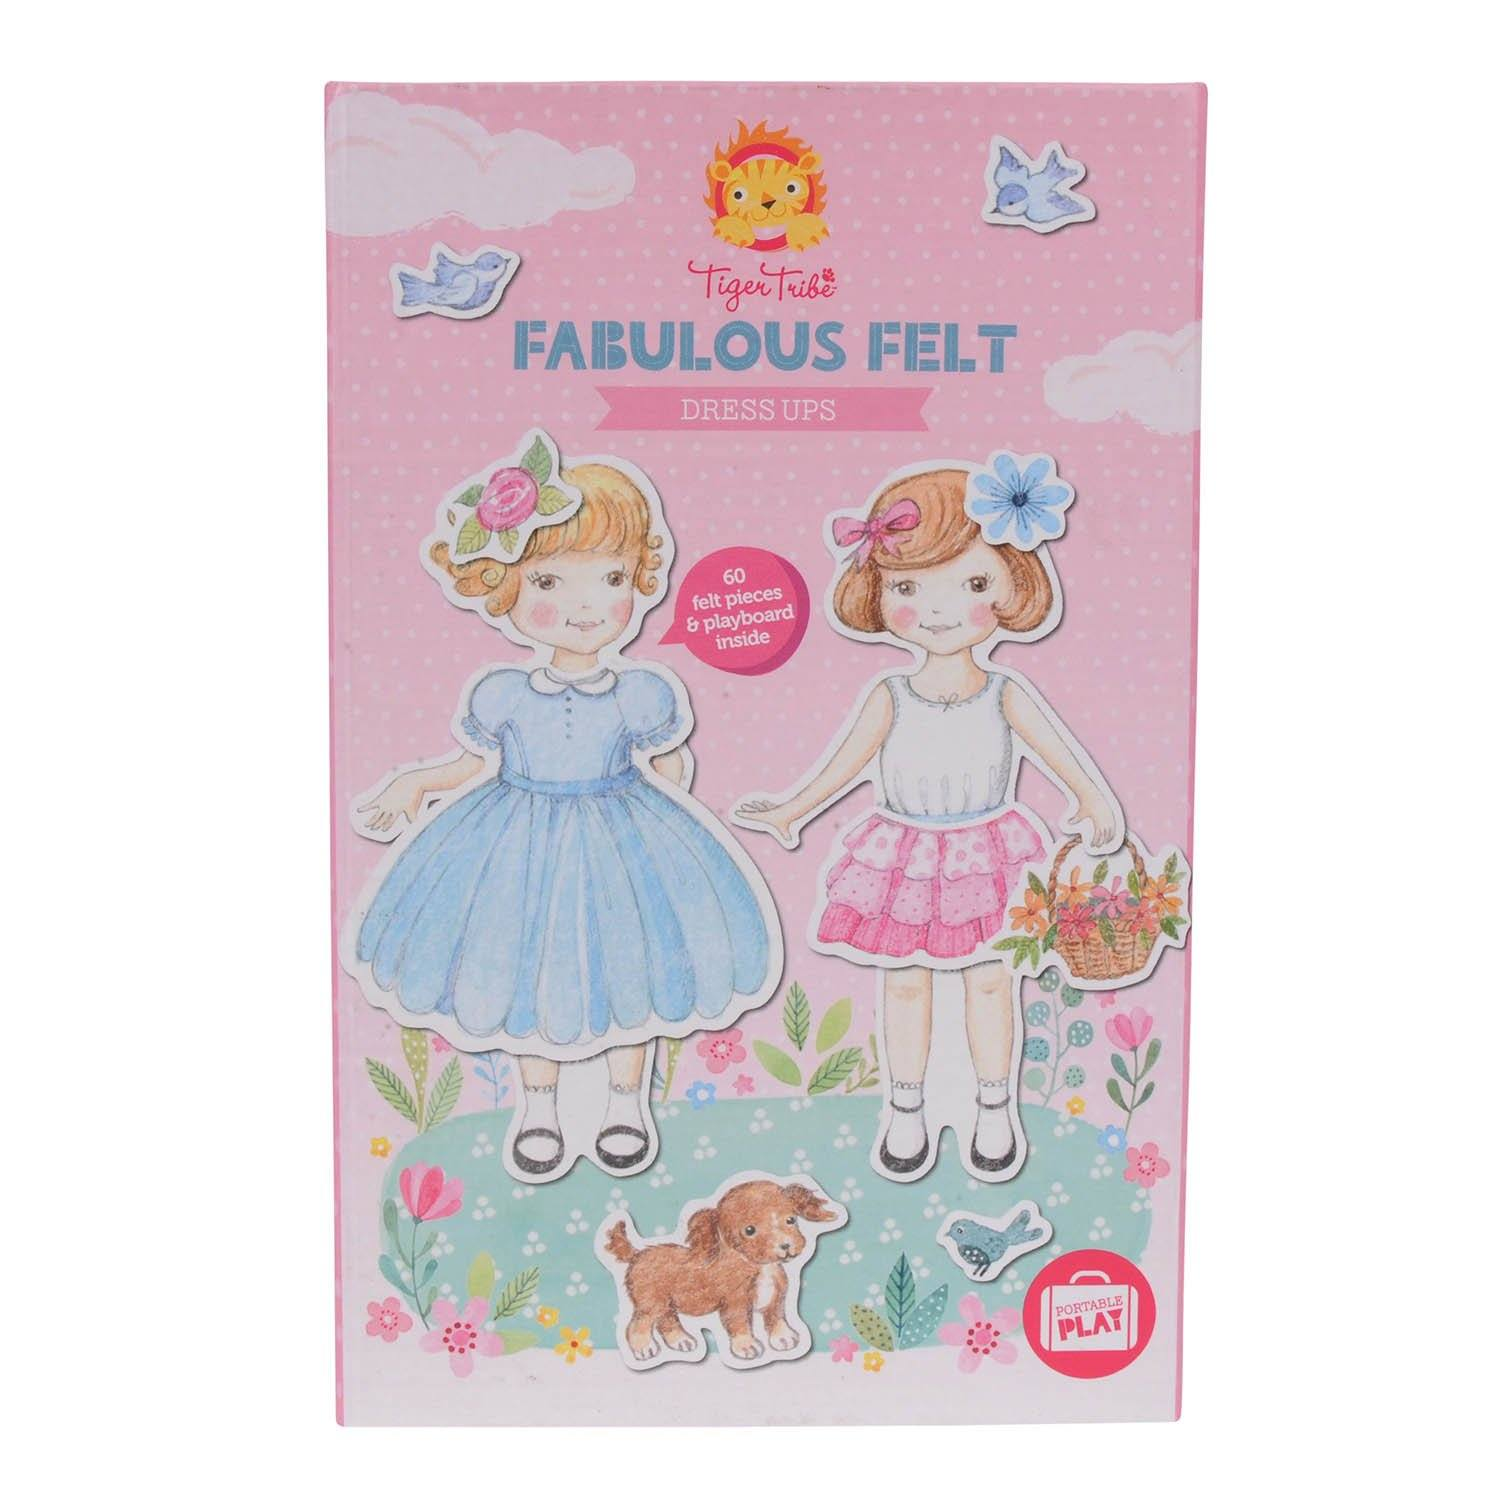 Fabulous Felt (Dress Ups)